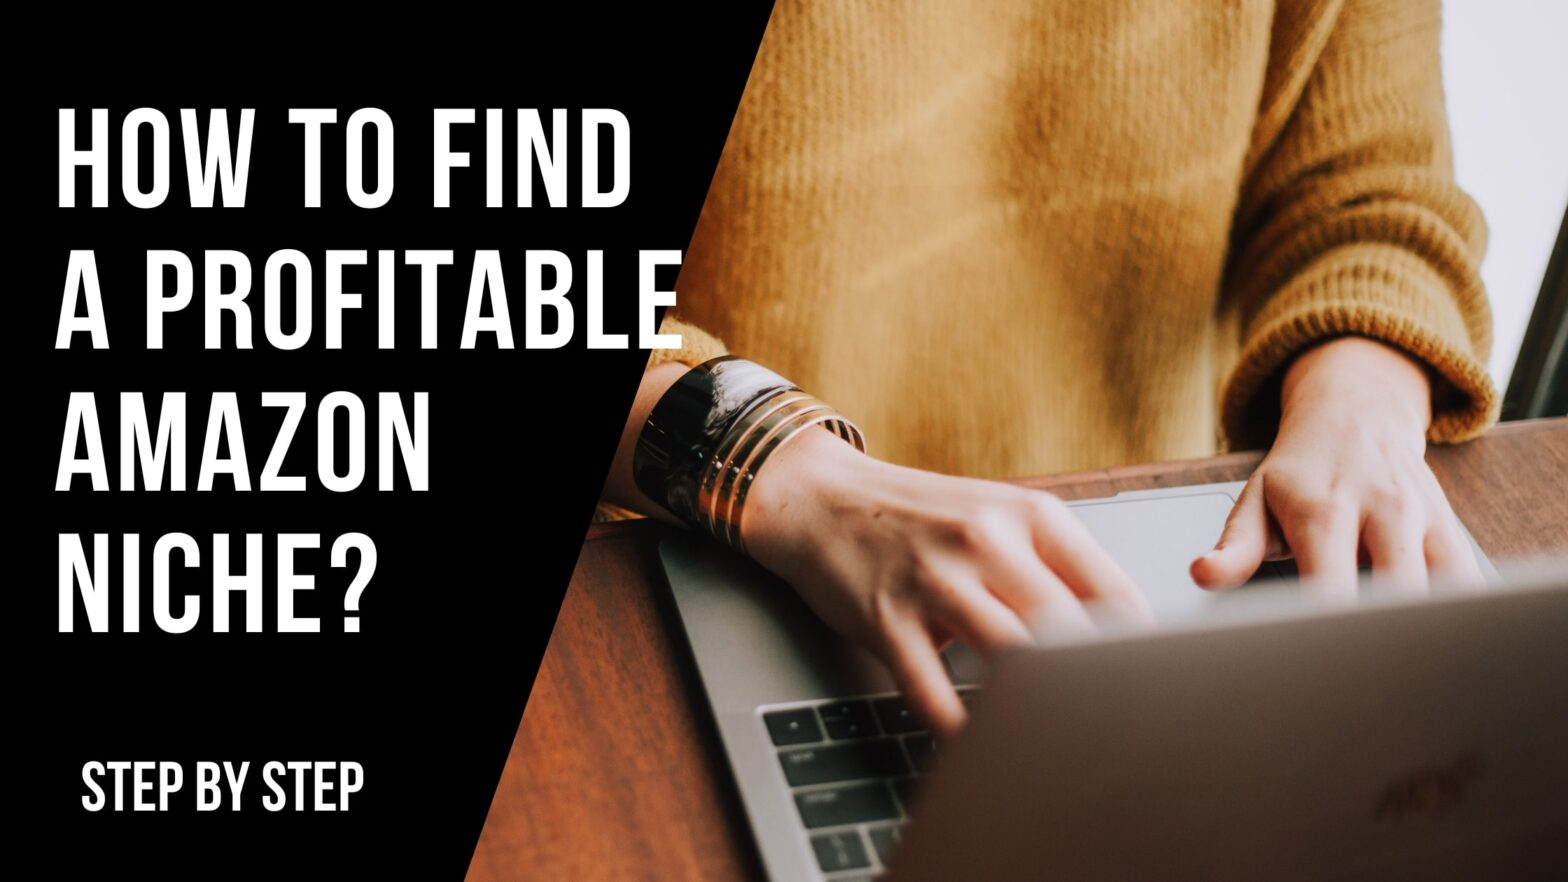 How to Find a Profitable Amazon Niche